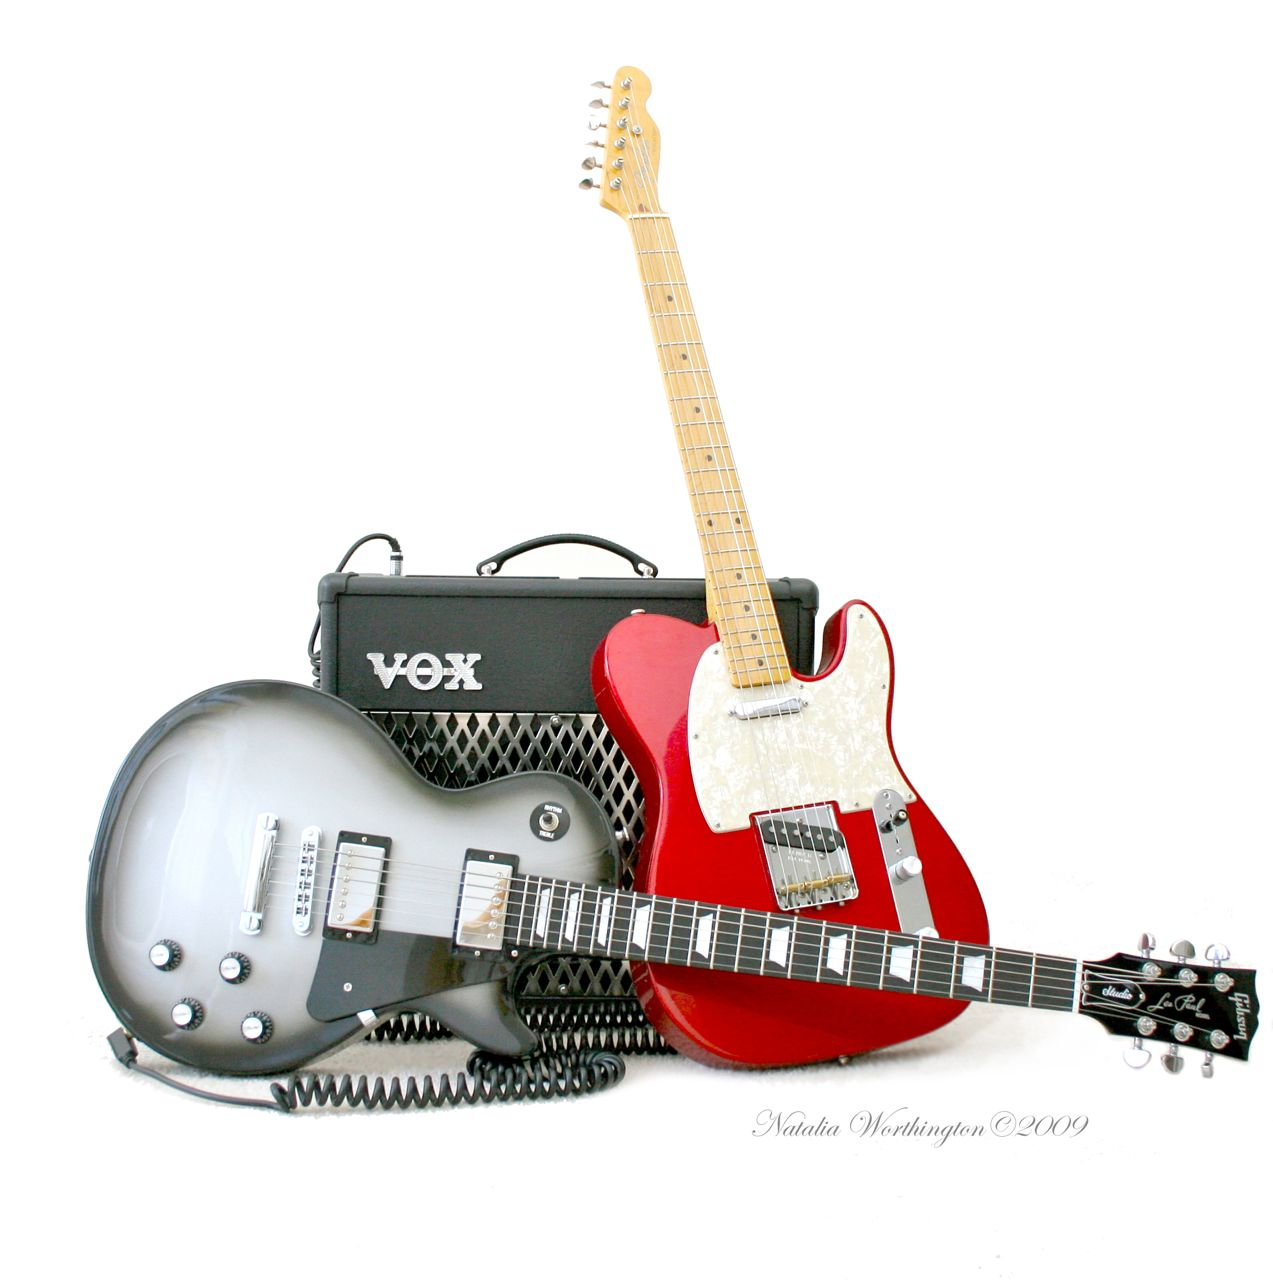 Telecaster Guitar Photo Gallery - Love is in the Air.